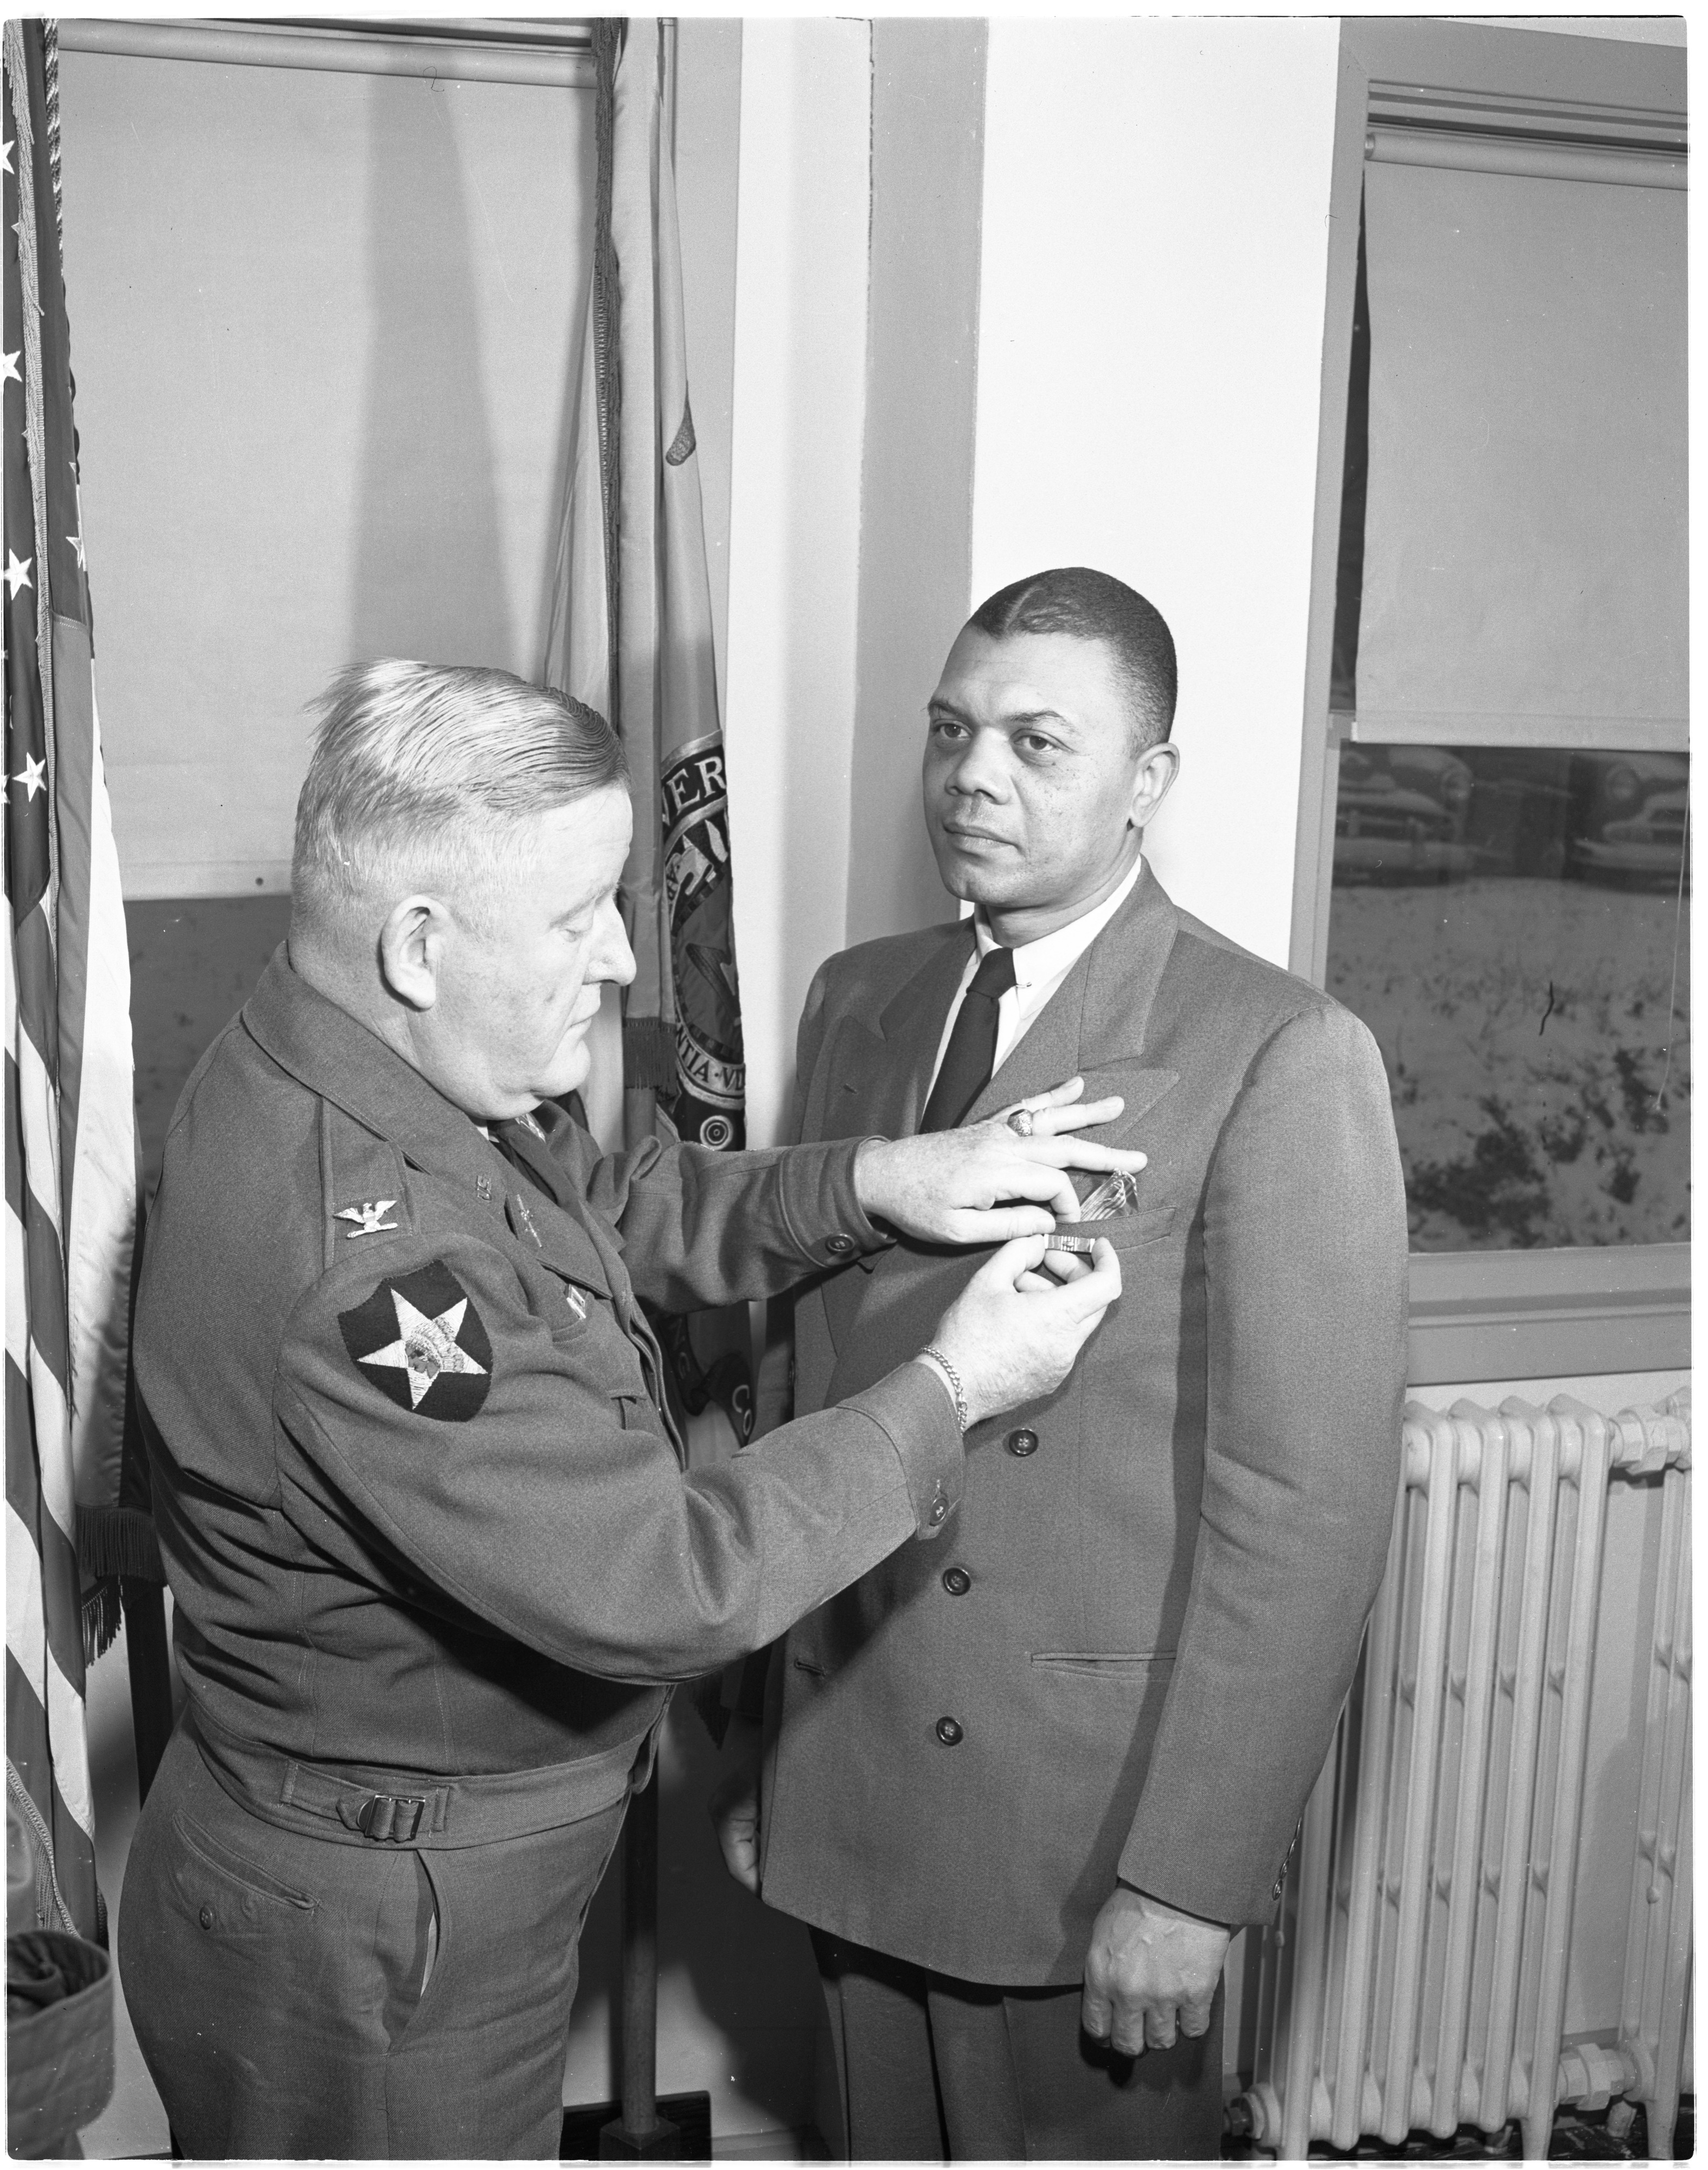 Lt. Col. John F. Harris Is Decorated For His Service In The Korean War, December 1951 image